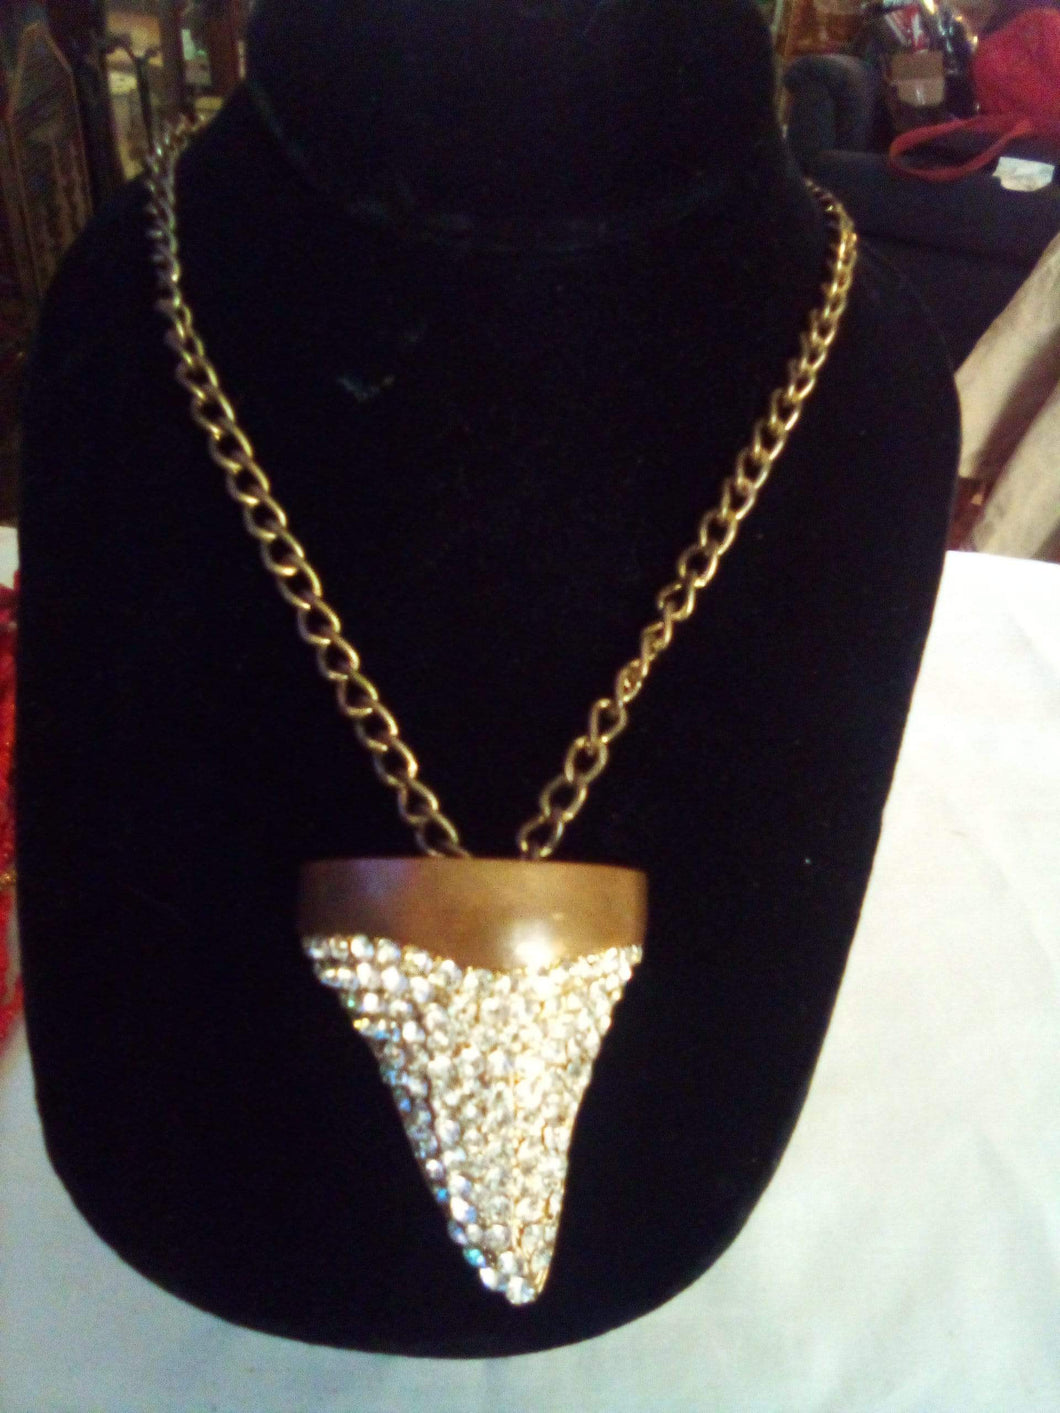 A shark tooth shaped necklace with crystals - B&P'sringsnthings